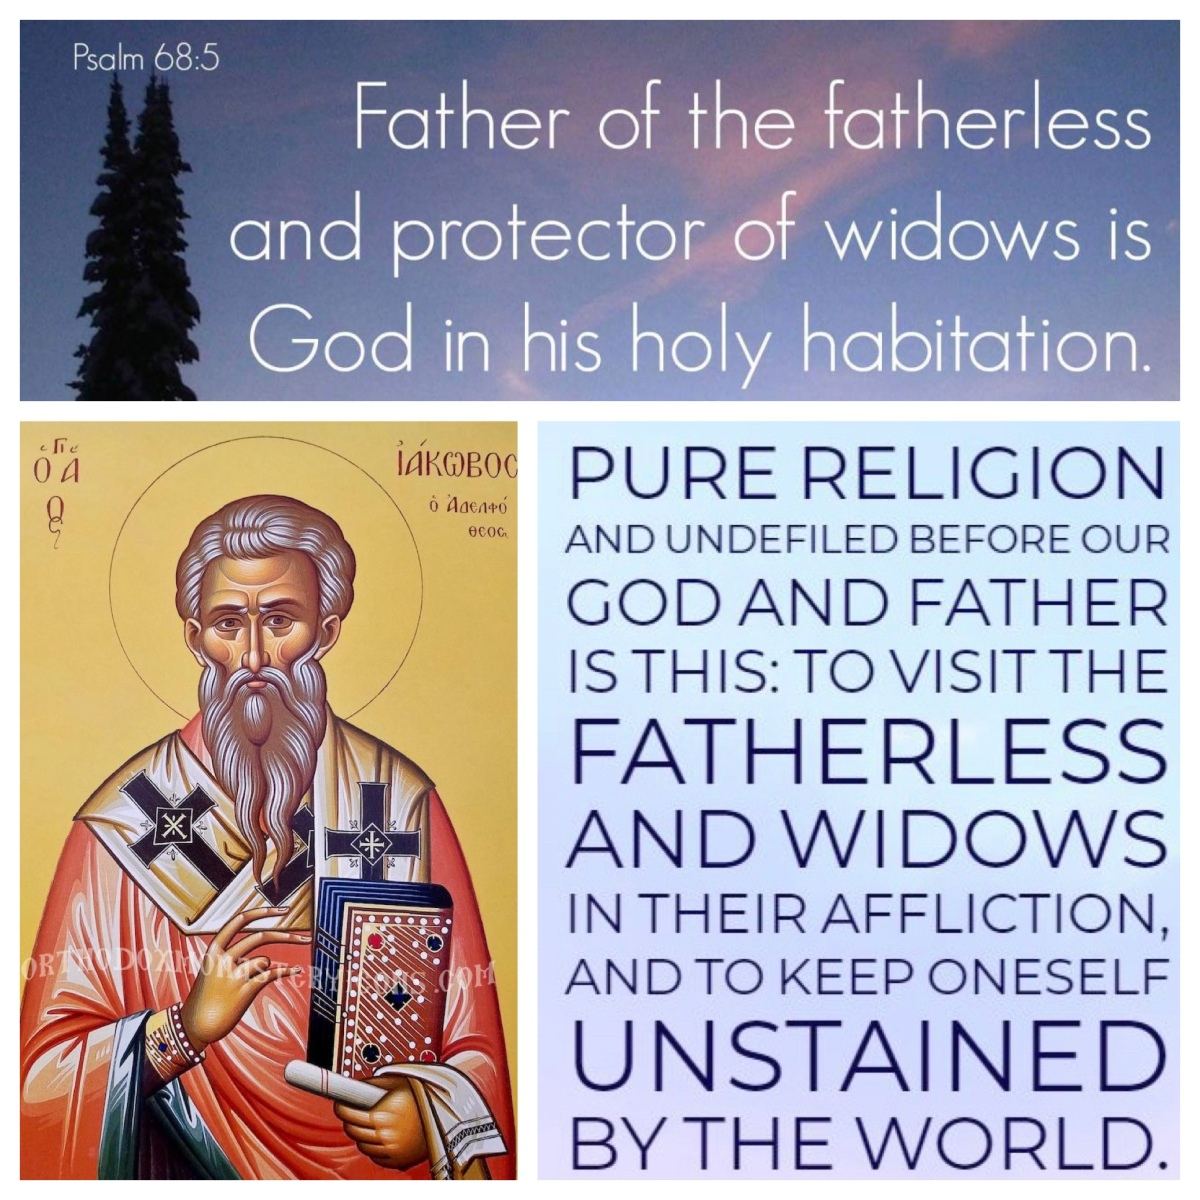 On care for orphans and widows (James 1; Pentecost14B)